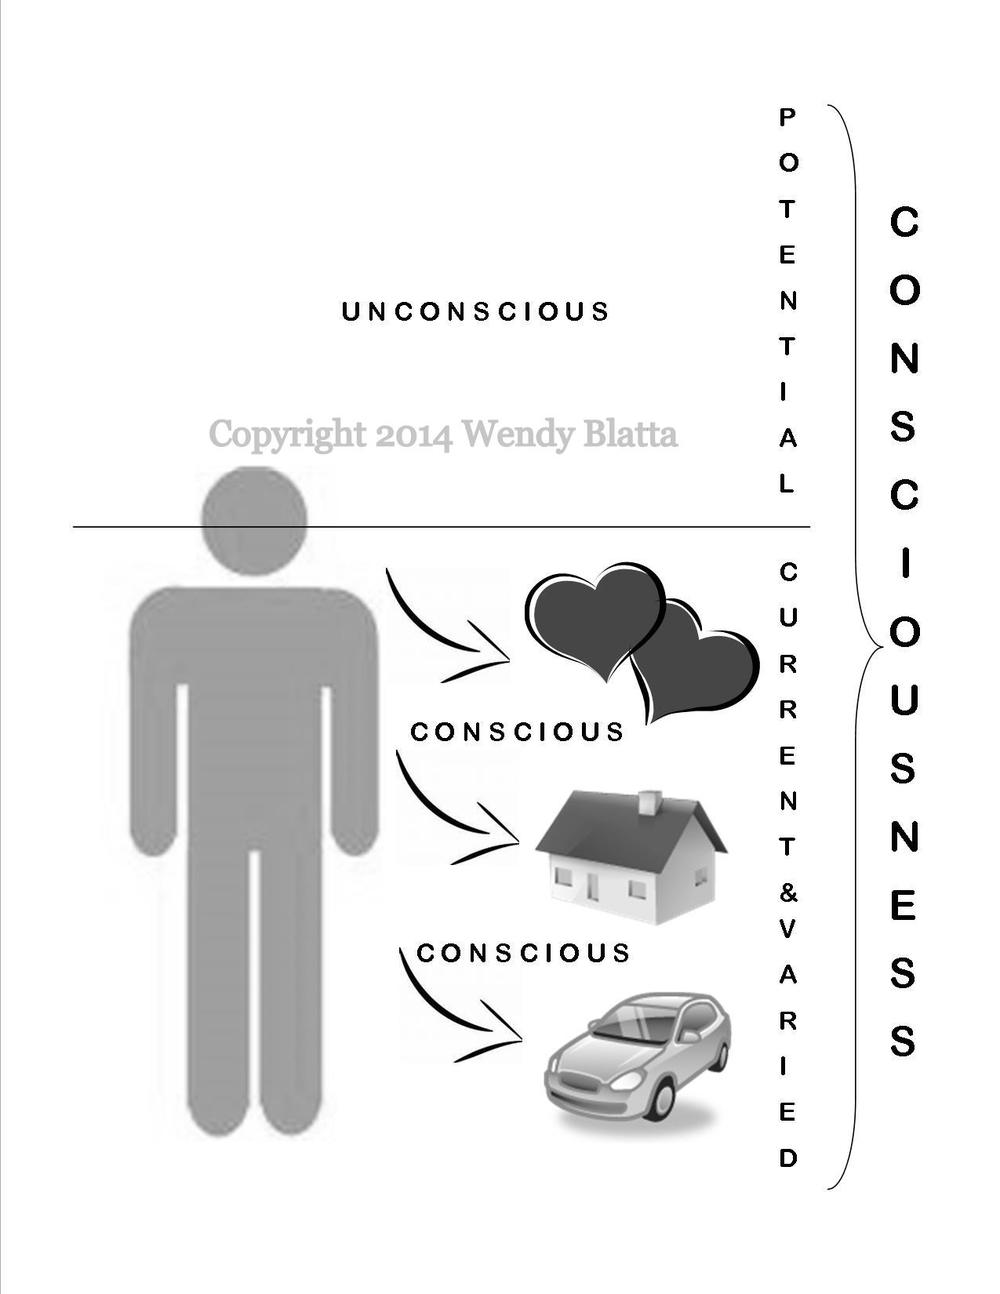 Consciousness 1 - Consc & Un Watermarked - Post.jpg